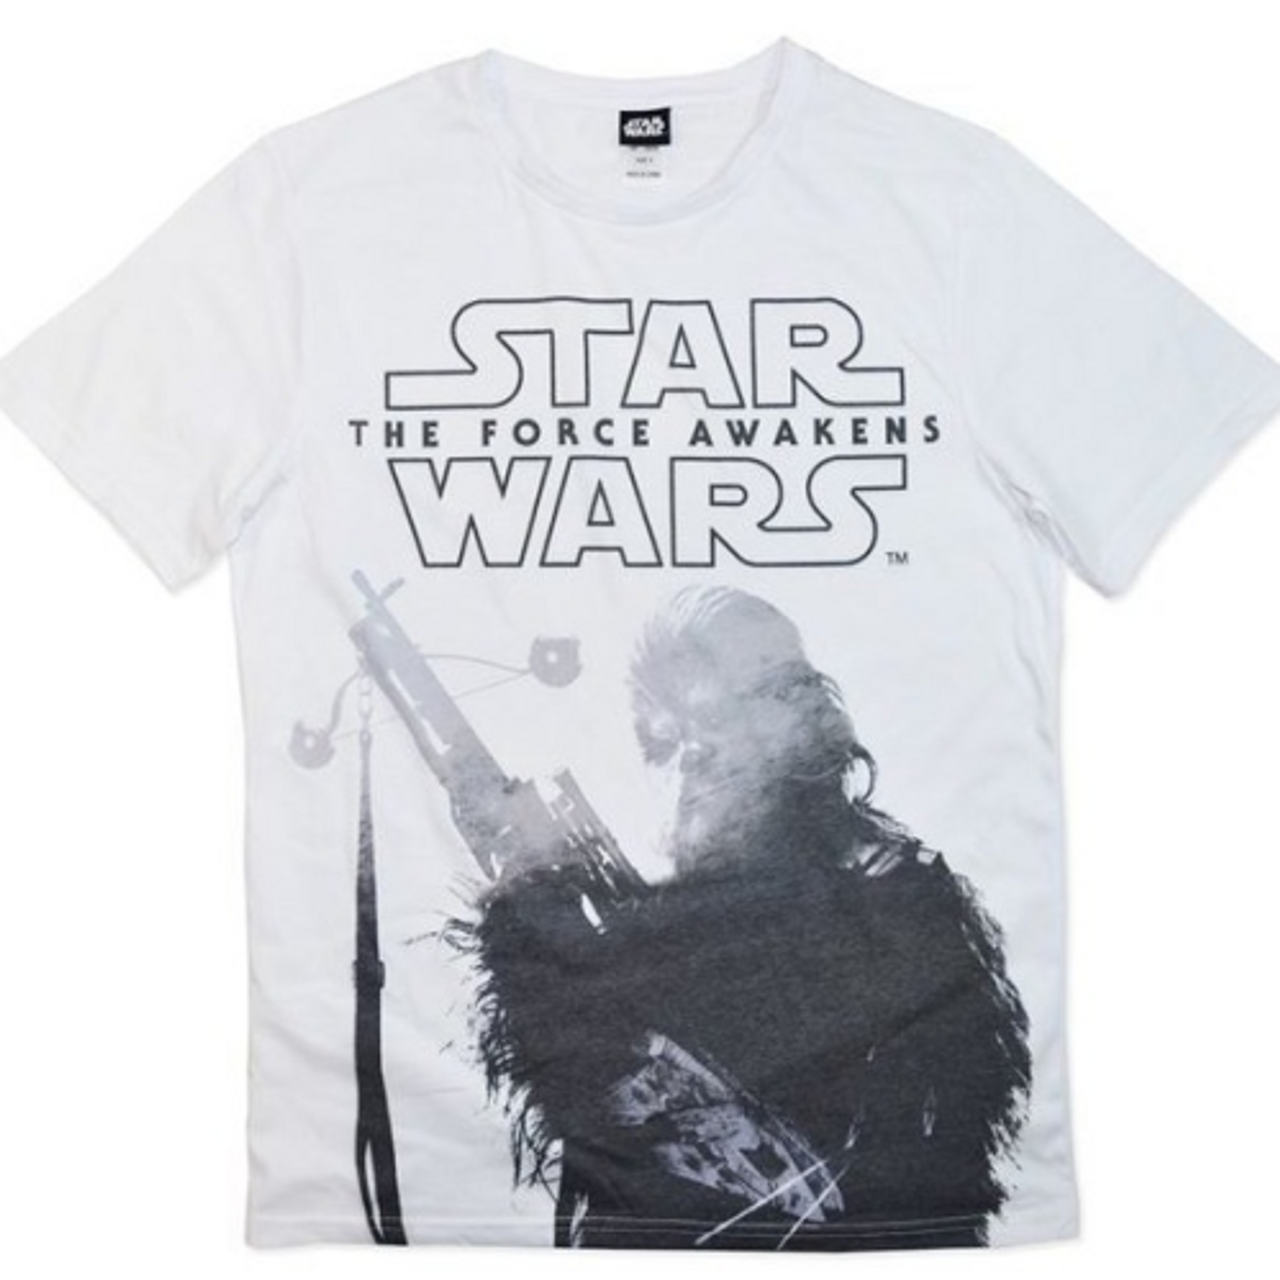 Star Wars - The Force Awakens T-Shirt - SIZE 2XL